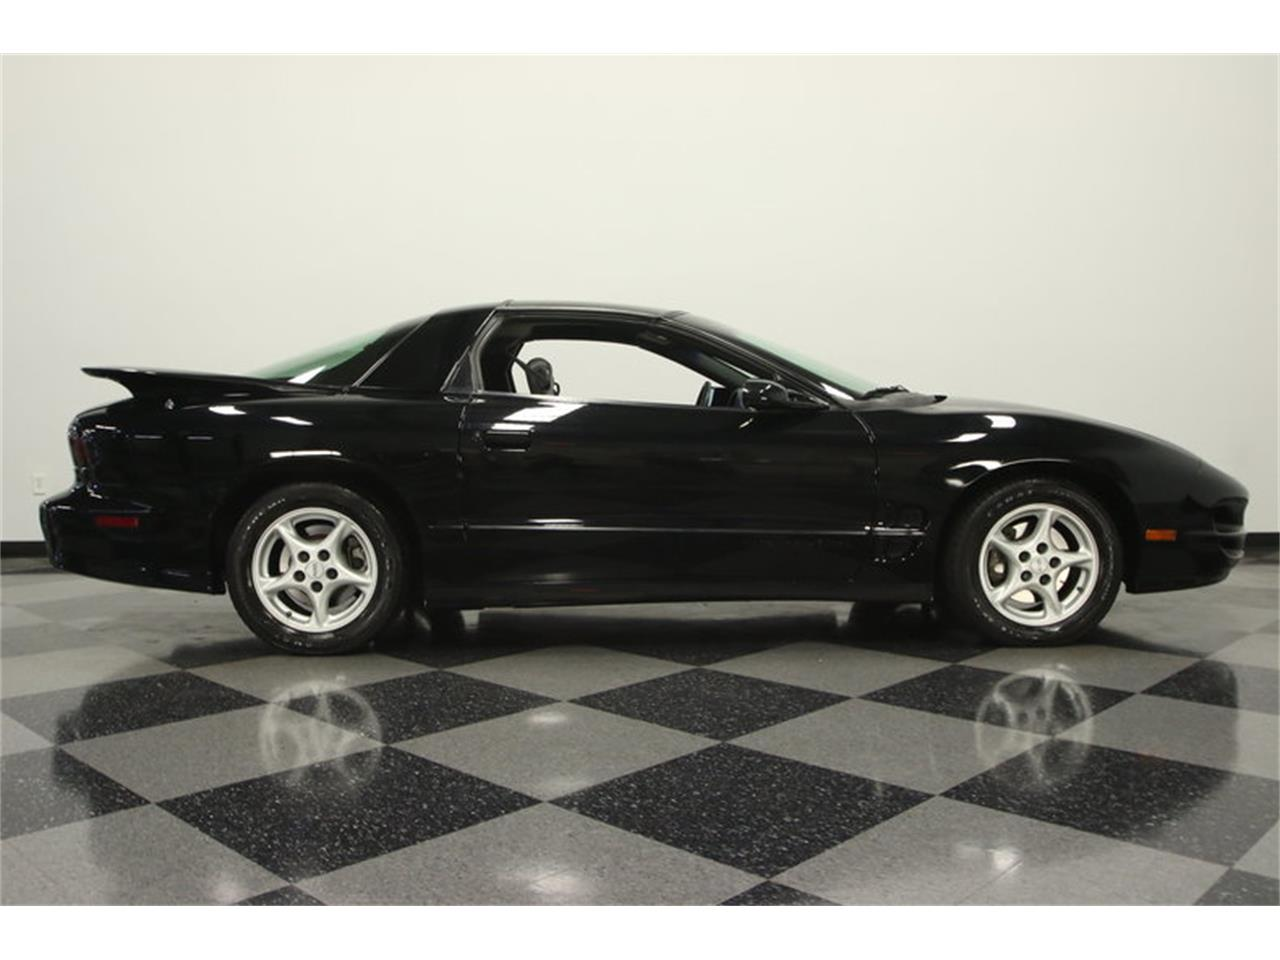 Large Picture of '98 Pontiac Firebird Trans Am located in Lutz Florida - $18,995.00 Offered by Streetside Classics - Tampa - M9OB